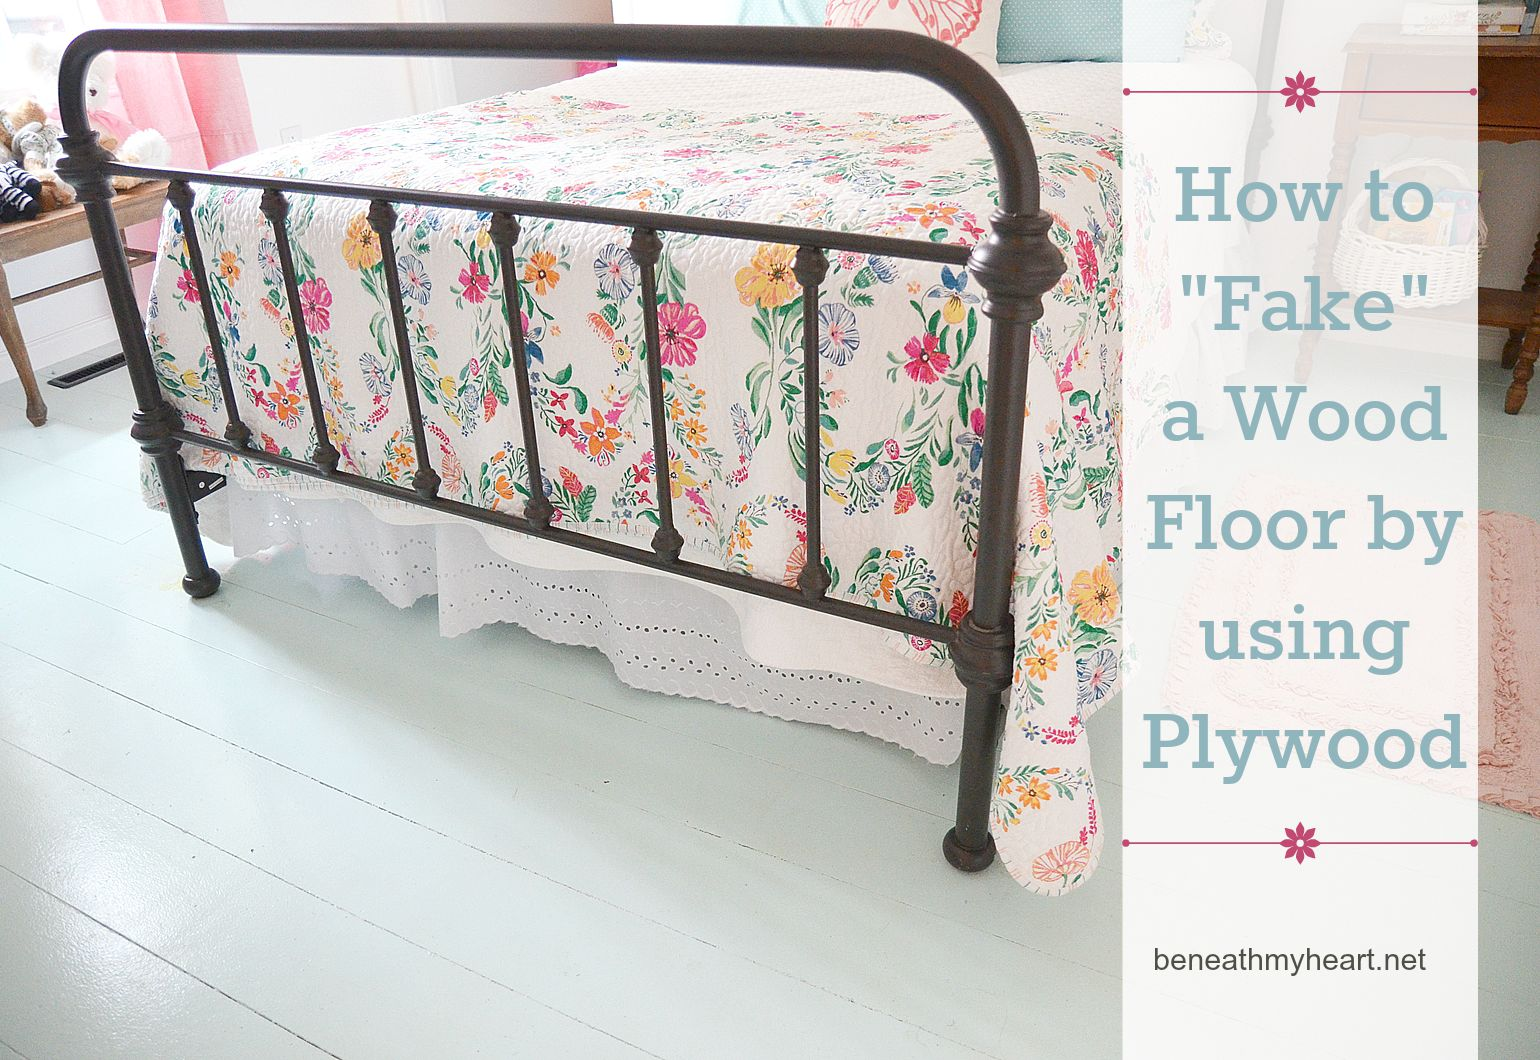 how-to-fake-a-wood-floor-by-using-ply